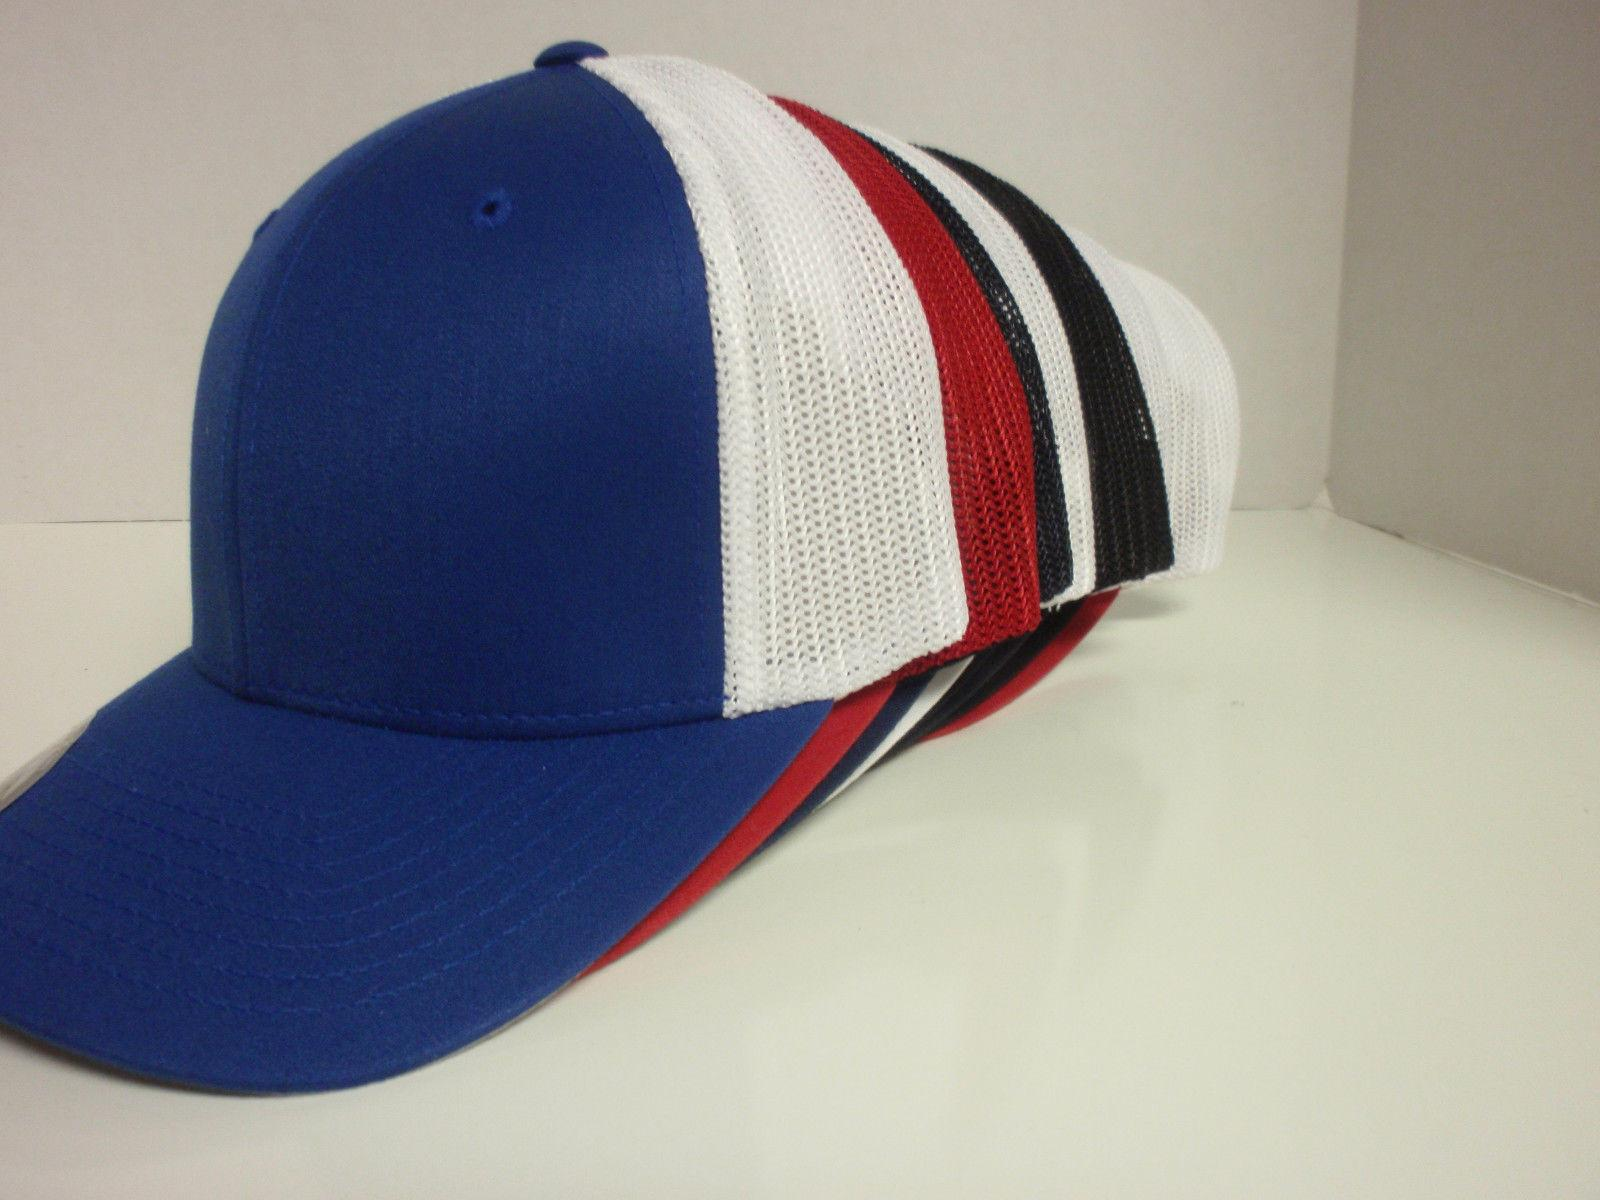 TRUCKER MESH CAP PLAIN BASEBALL FLEX CURVED 6511